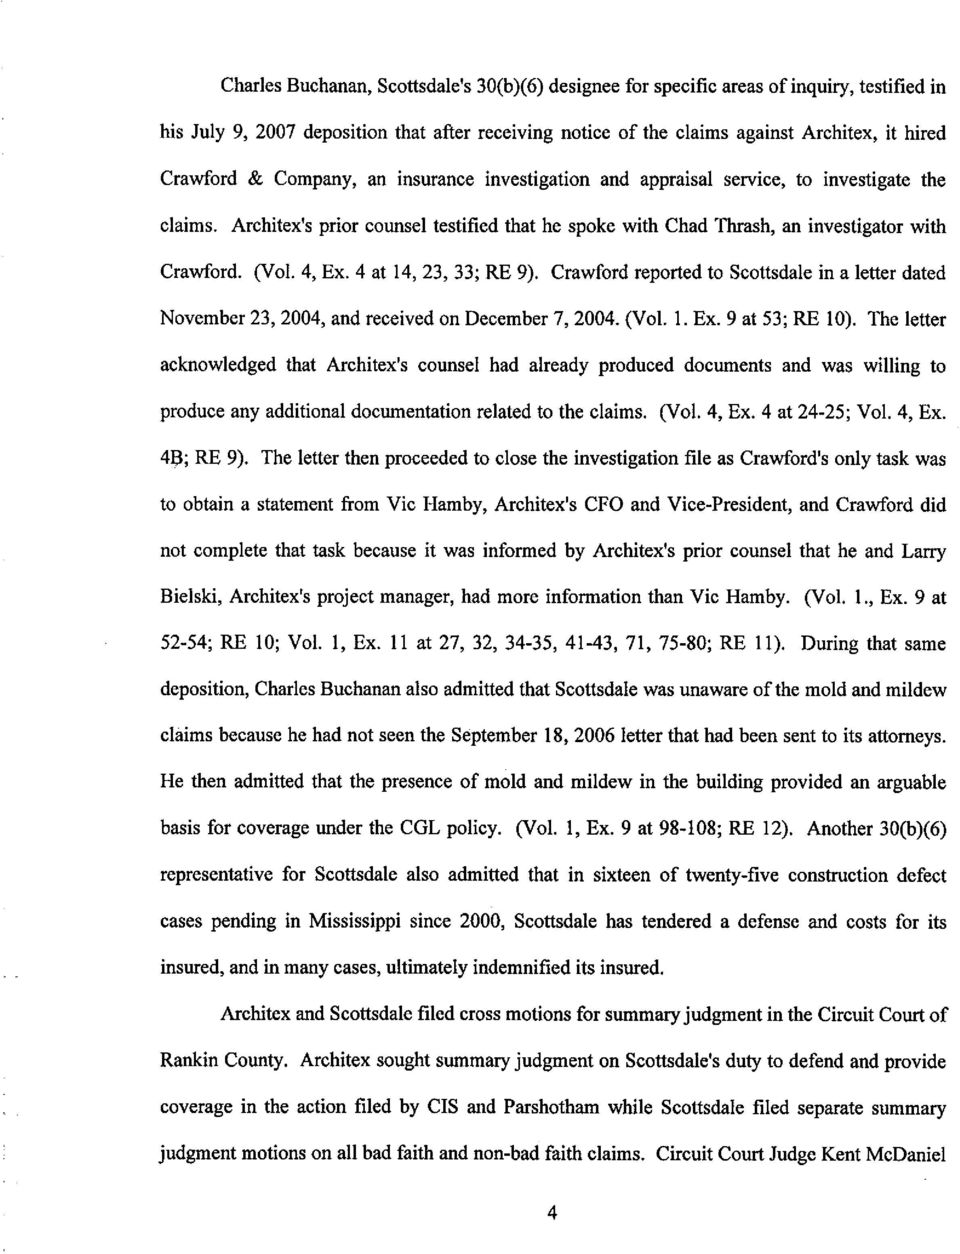 4 at 14, 23, 33; RE 9). Crawford reported to Scottsdale in a letter dated November 23, 2004, and received on December 7, 2004. (Vol. I. Ex. 9 at 53; RE 10).